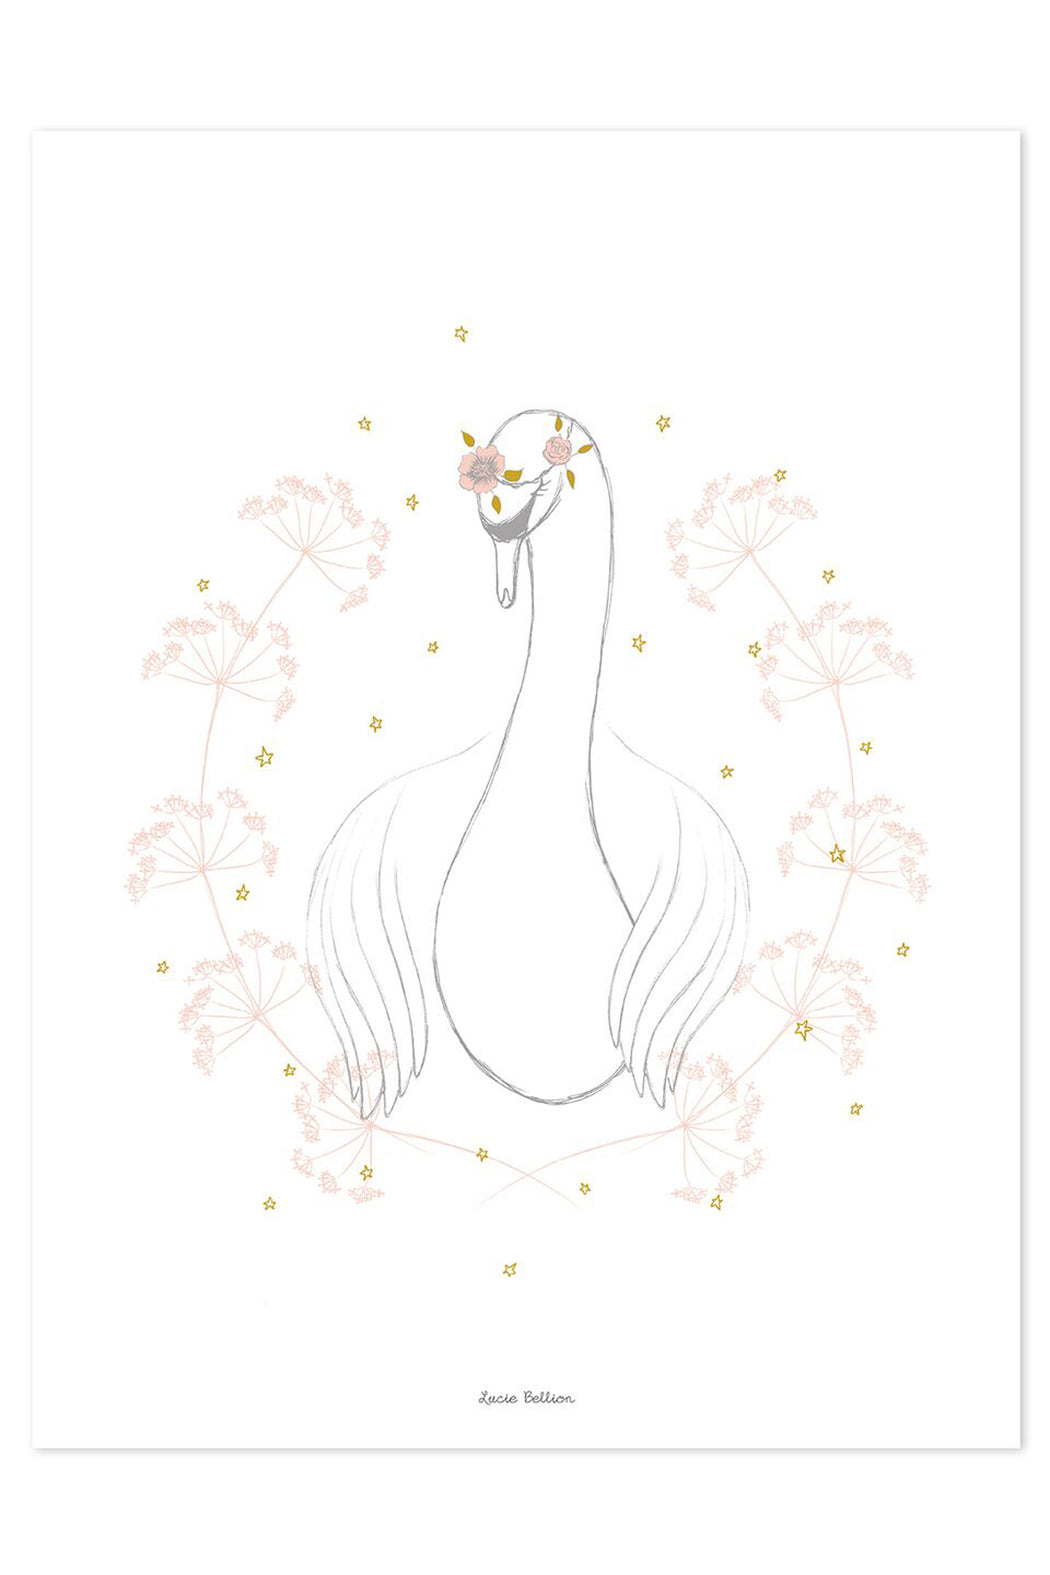 Botany Swan, Decor, Lilipinso - 3LittlePicks